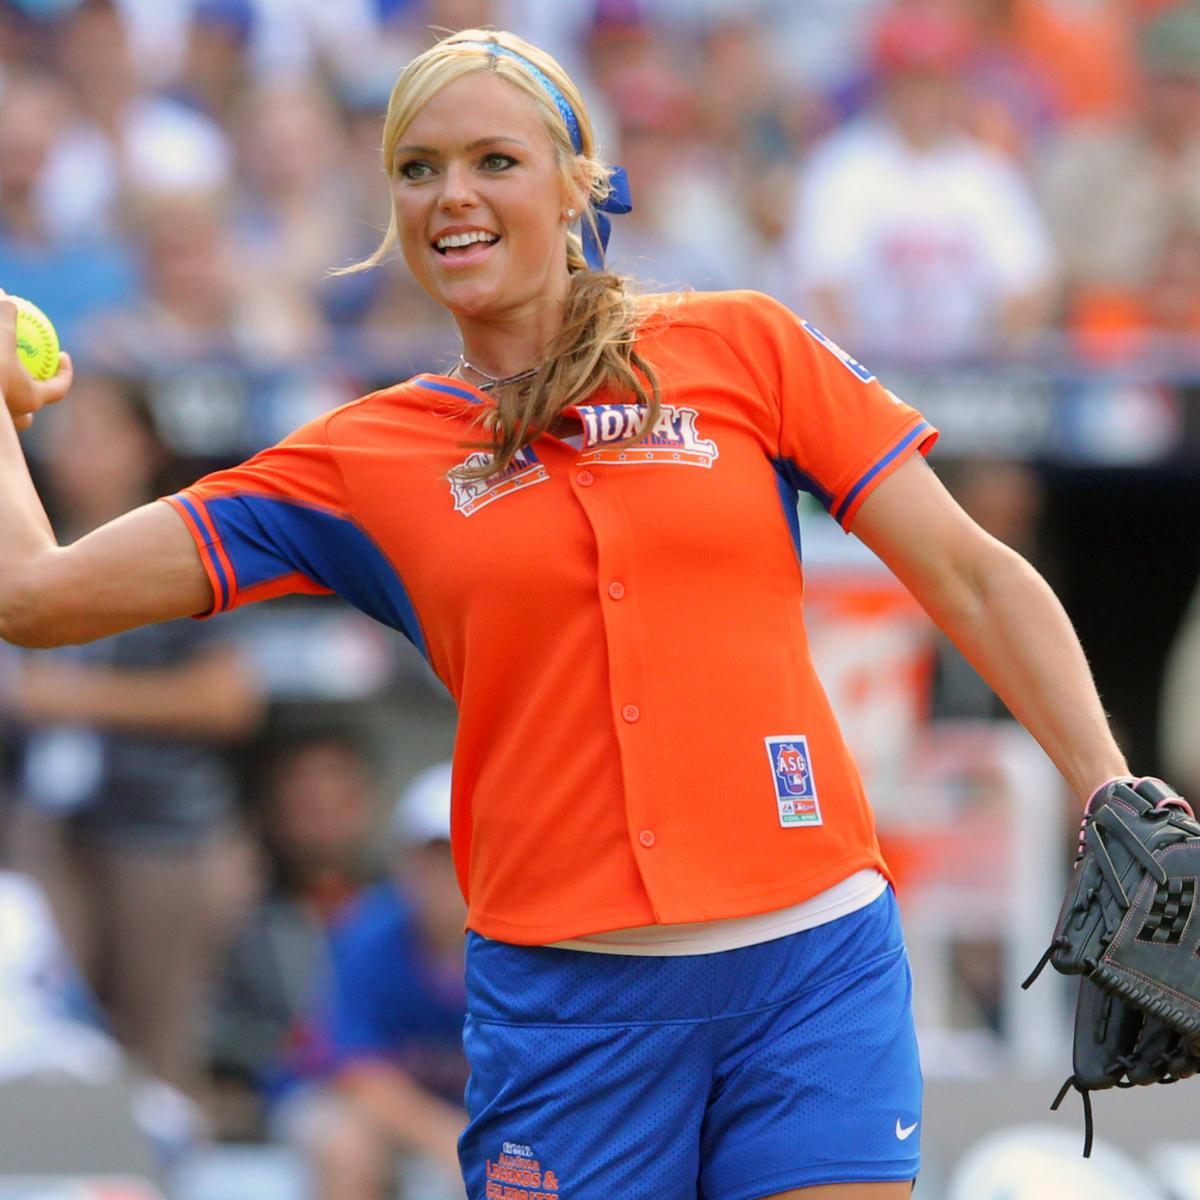 Celebrity softball game 2019 highlights